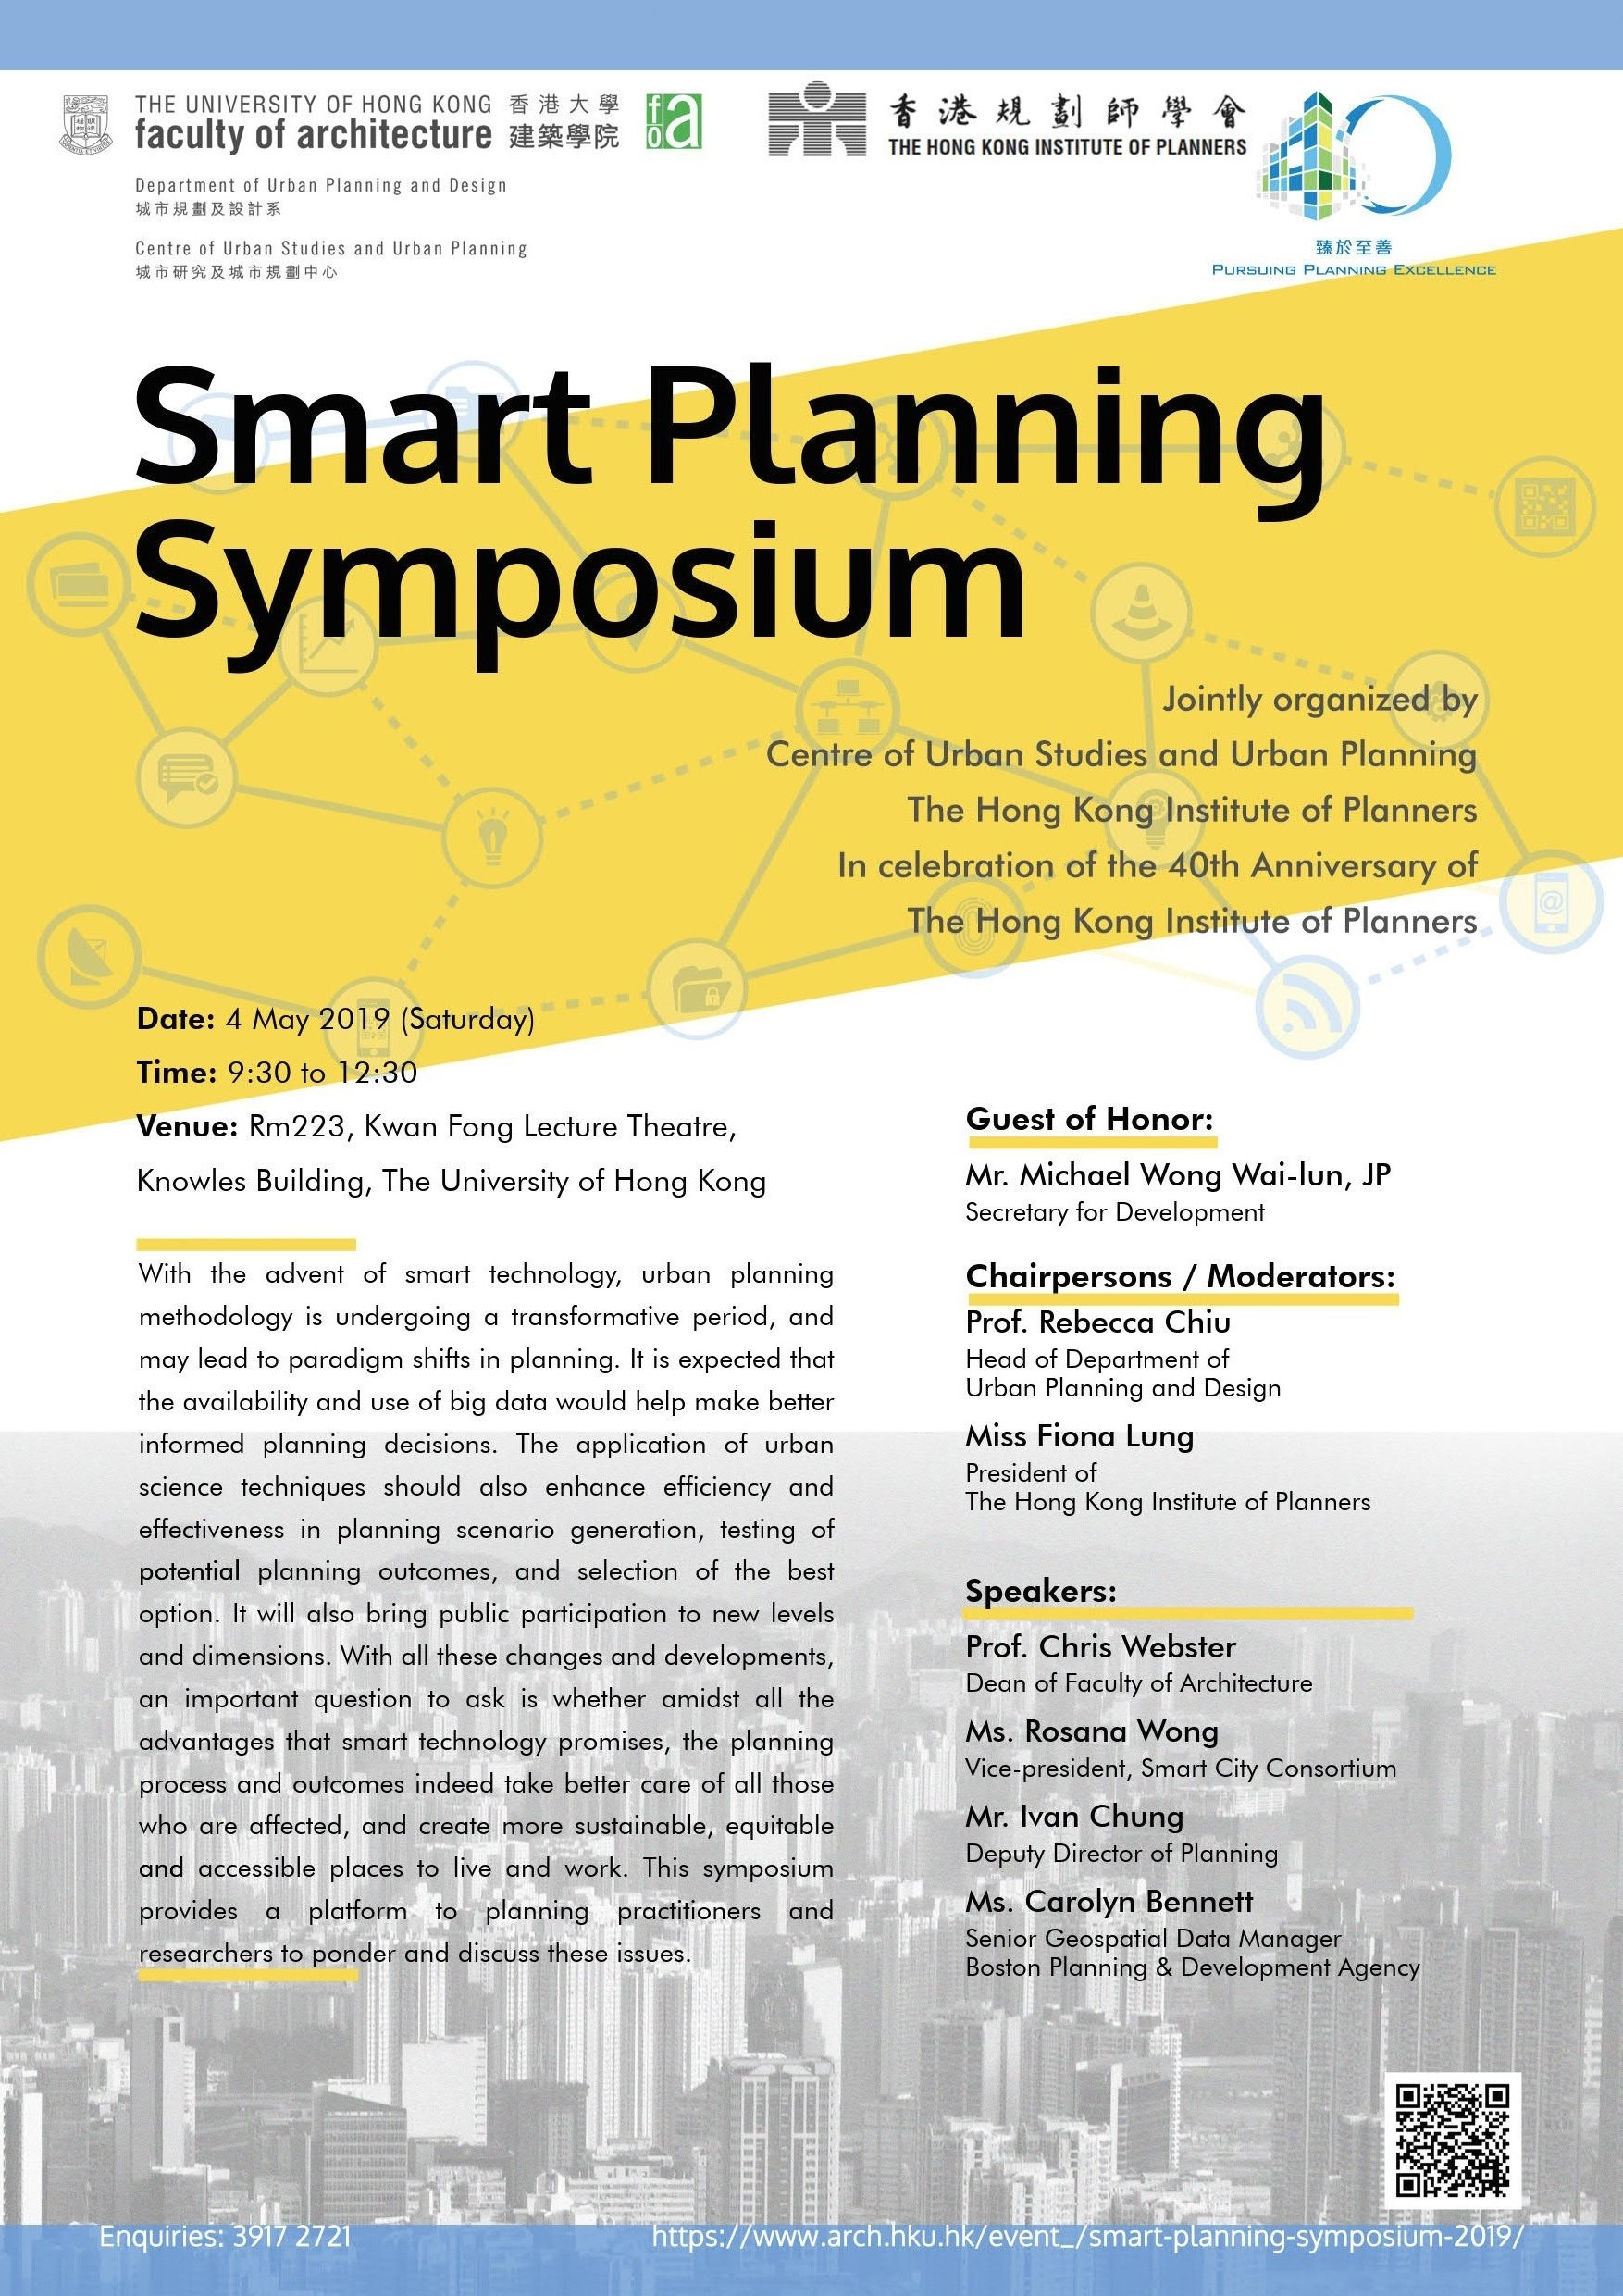 HKIP Events — The Hong Kong Institute of Planners (HKIP) 香港規劃師學會